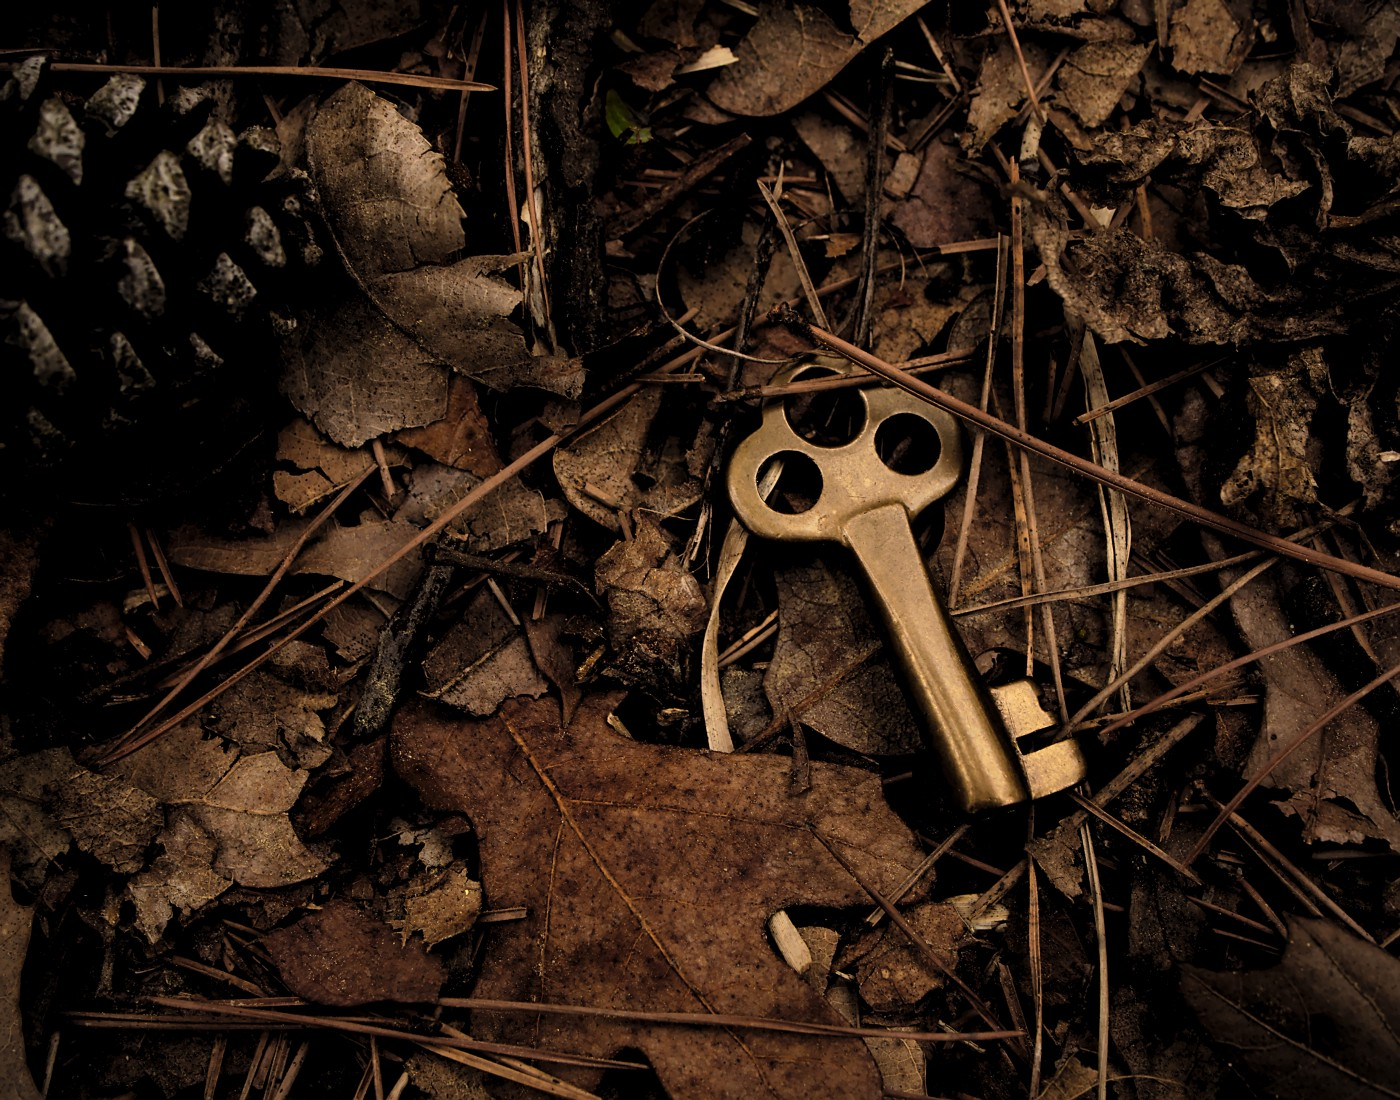 an old key amidst dead leaves. A Snipe Hunt by Rena Willis